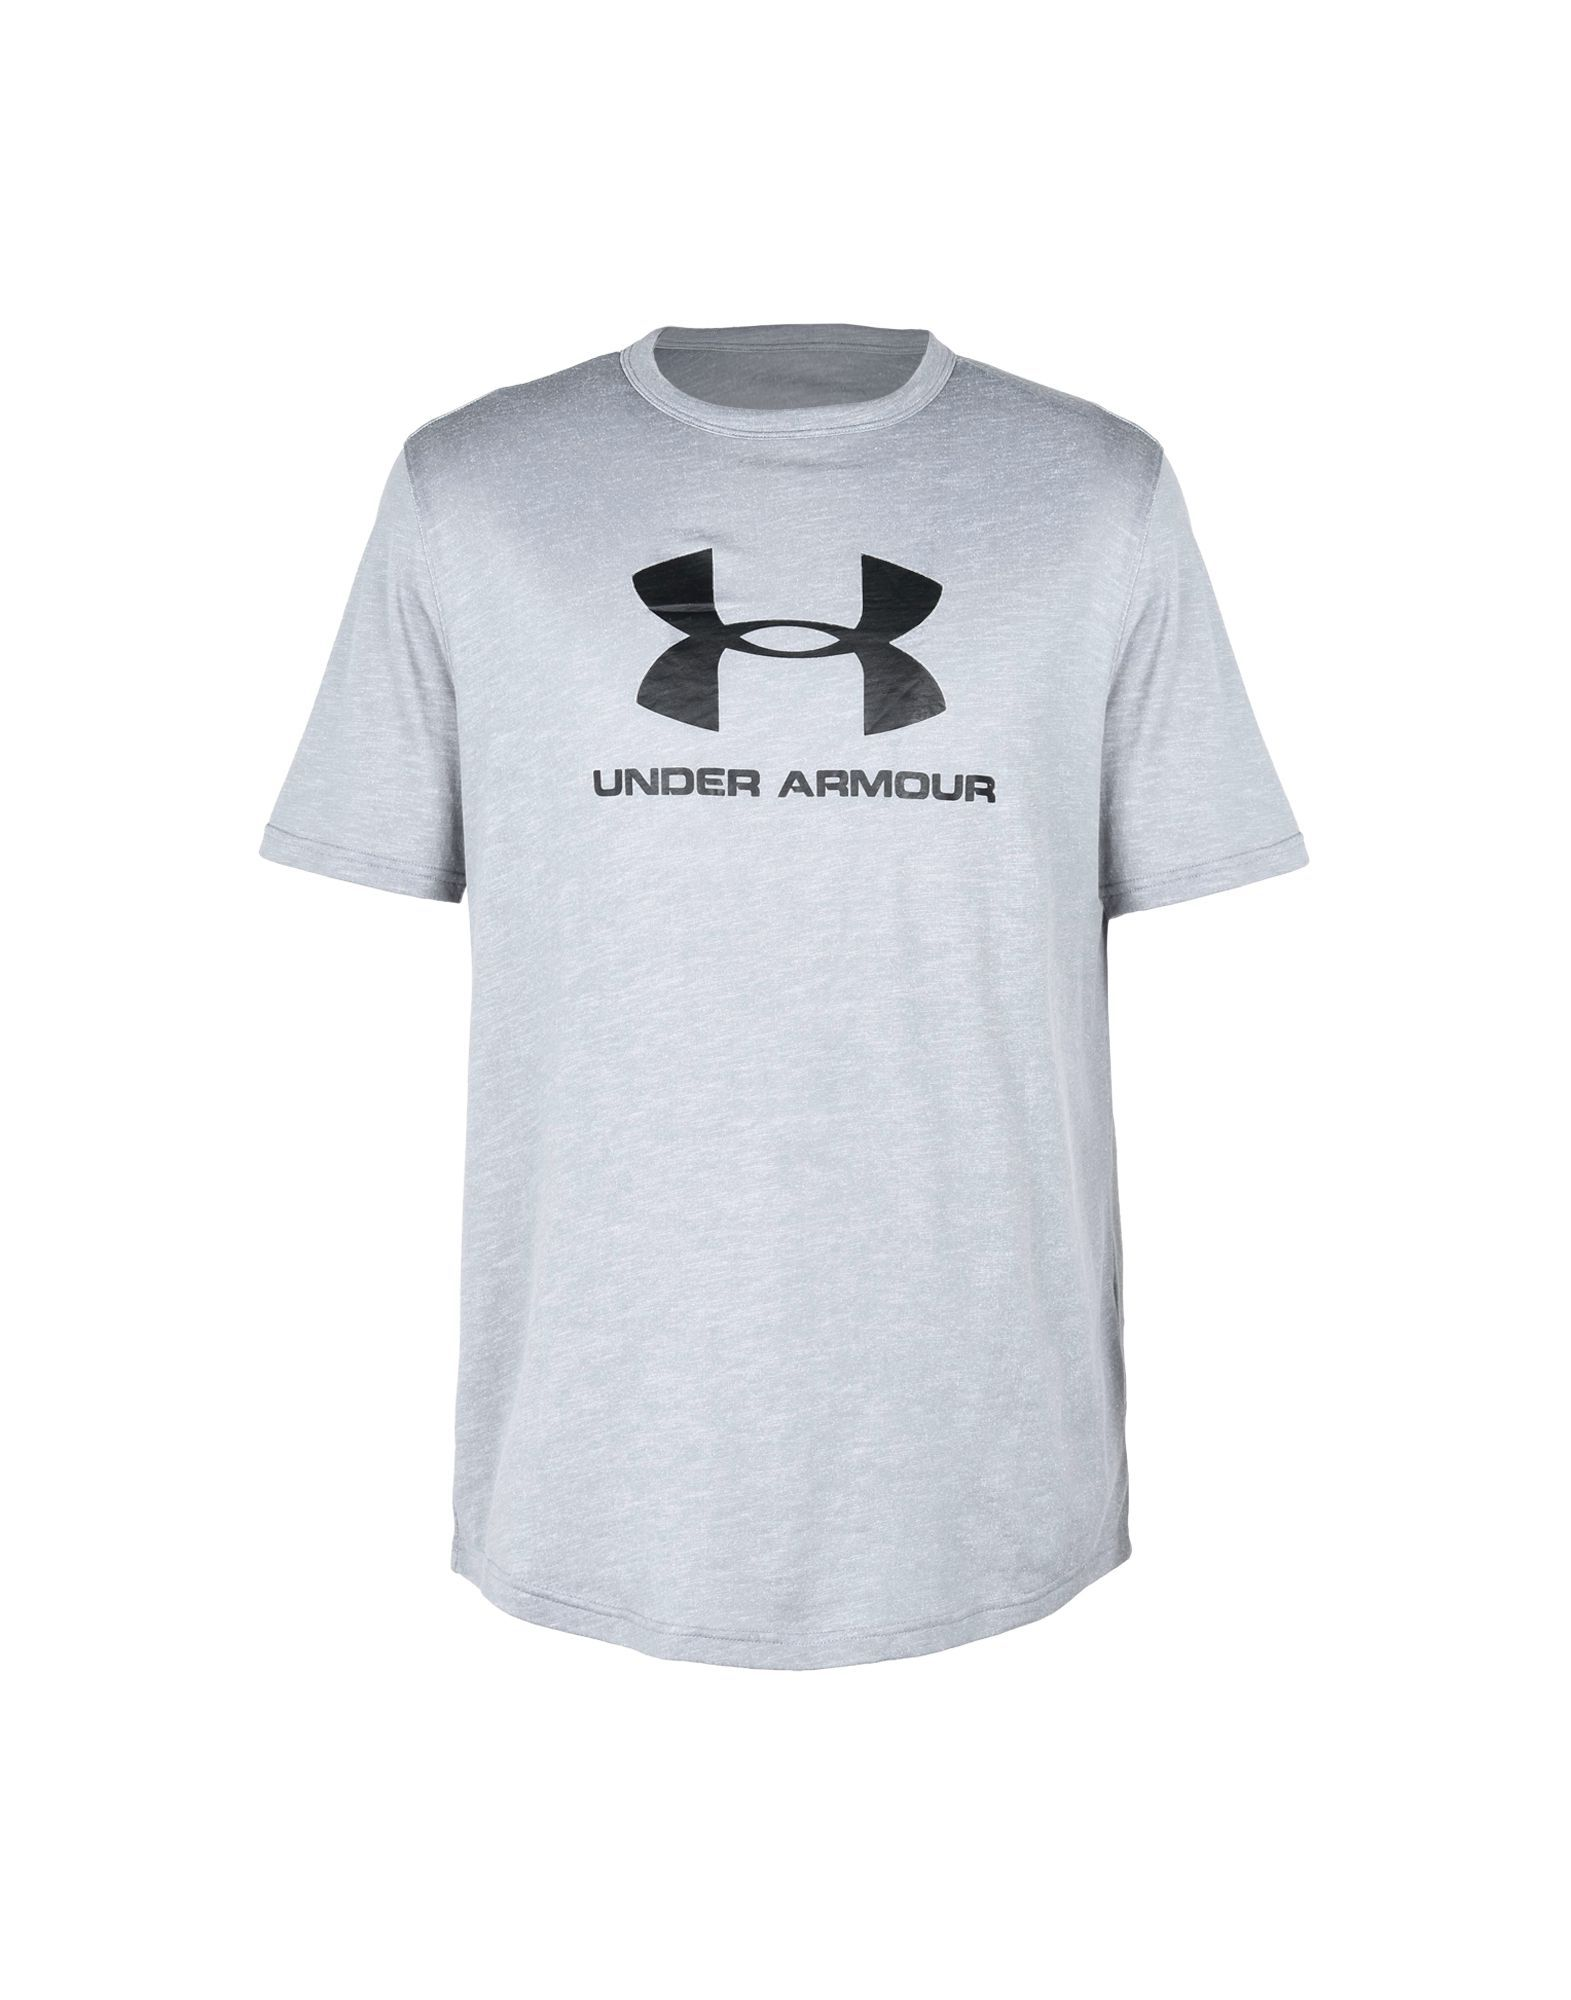 Under Armour Grey Cotton T-shirts